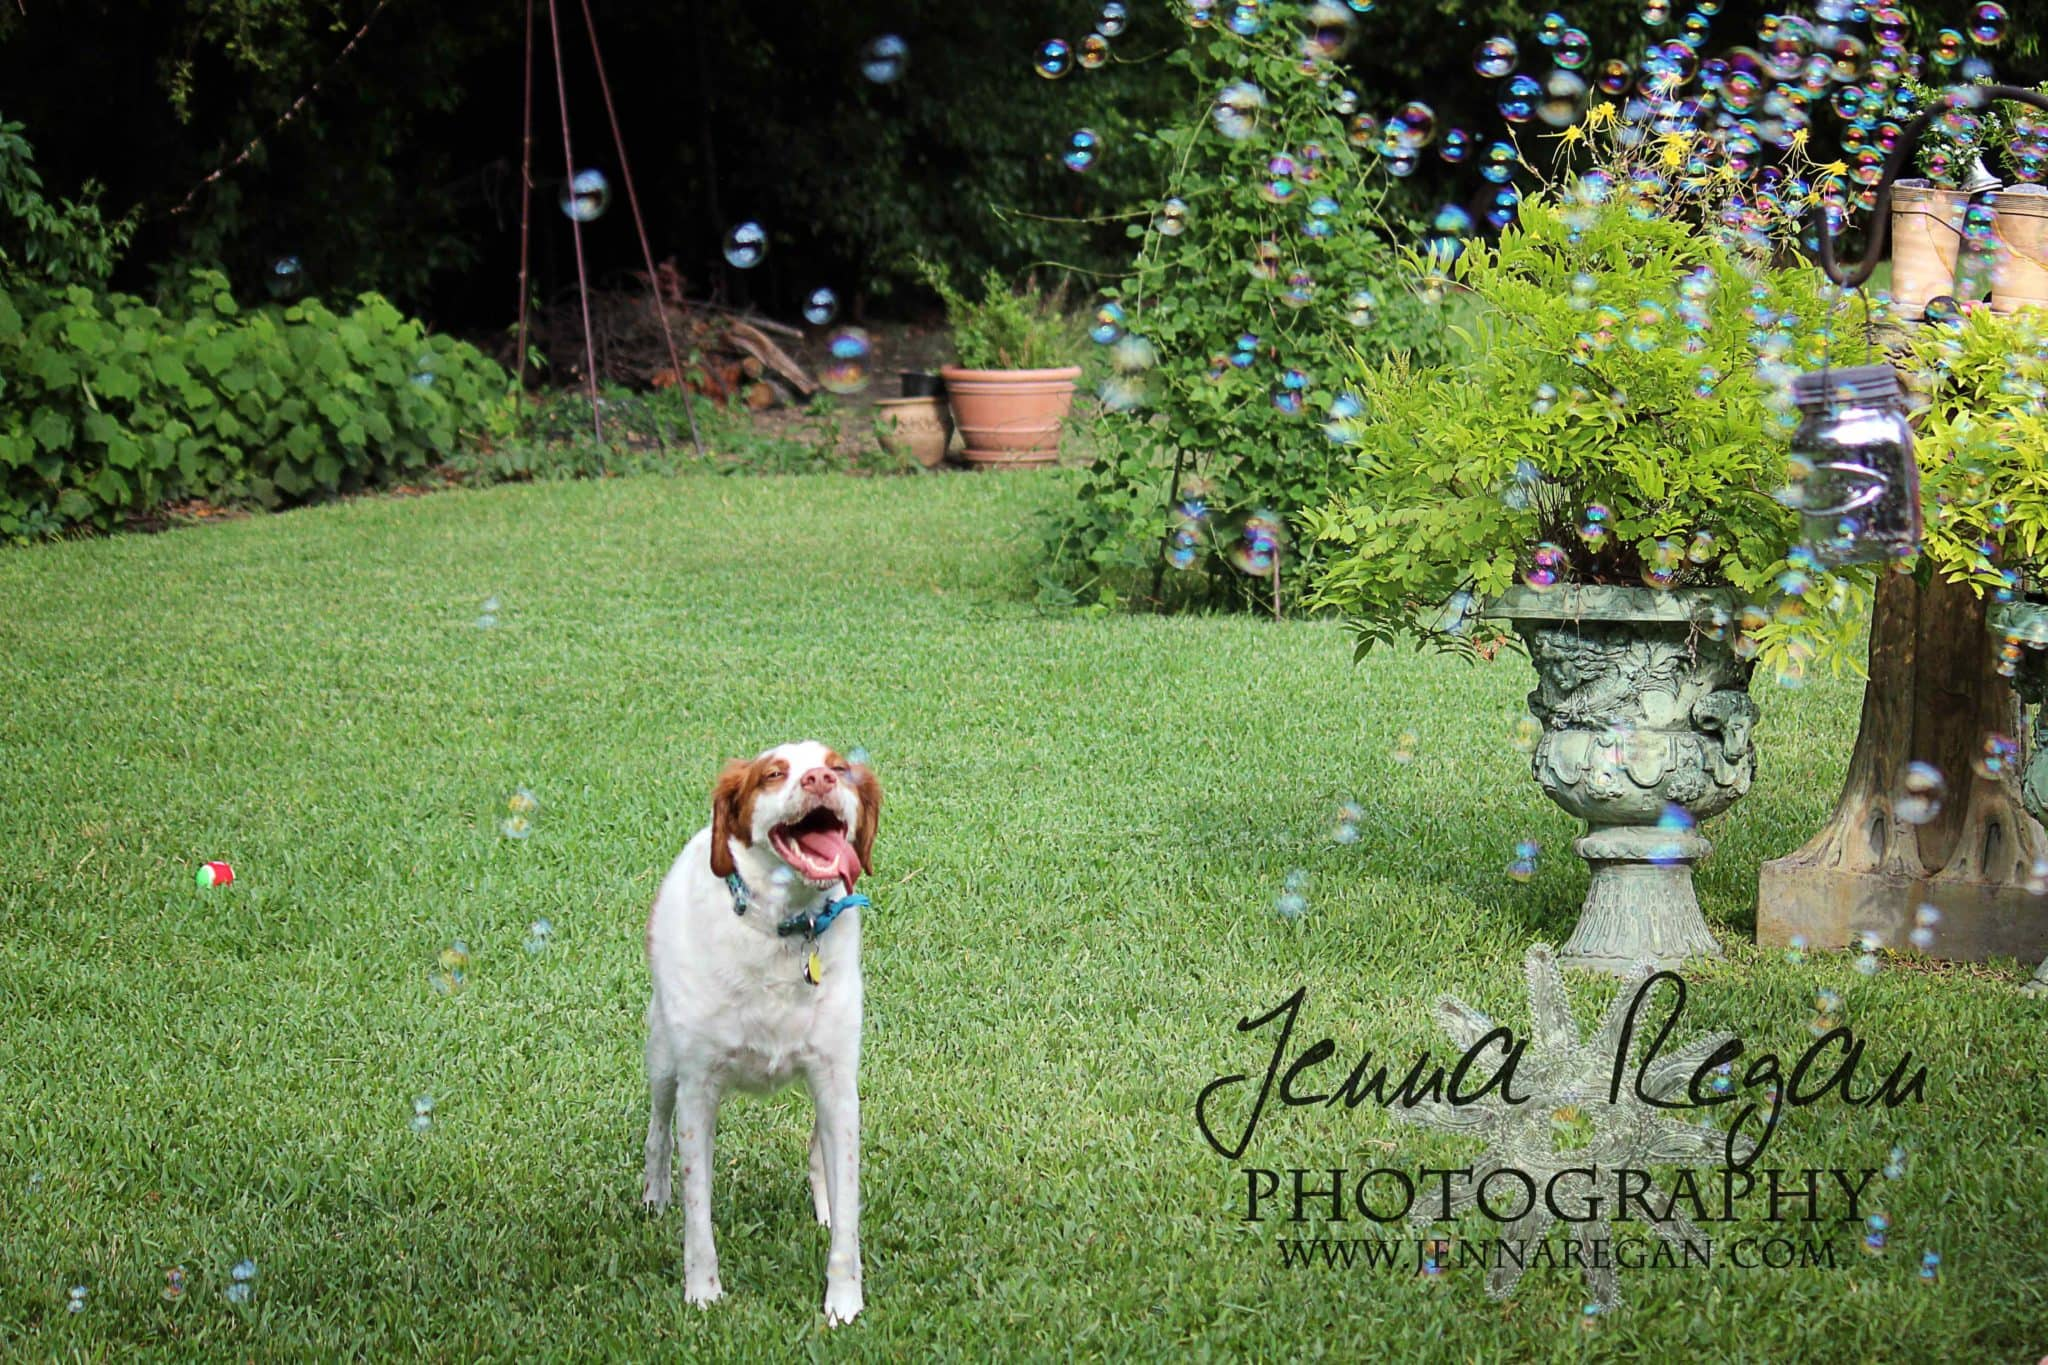 capturing dogs personality through photo shoot